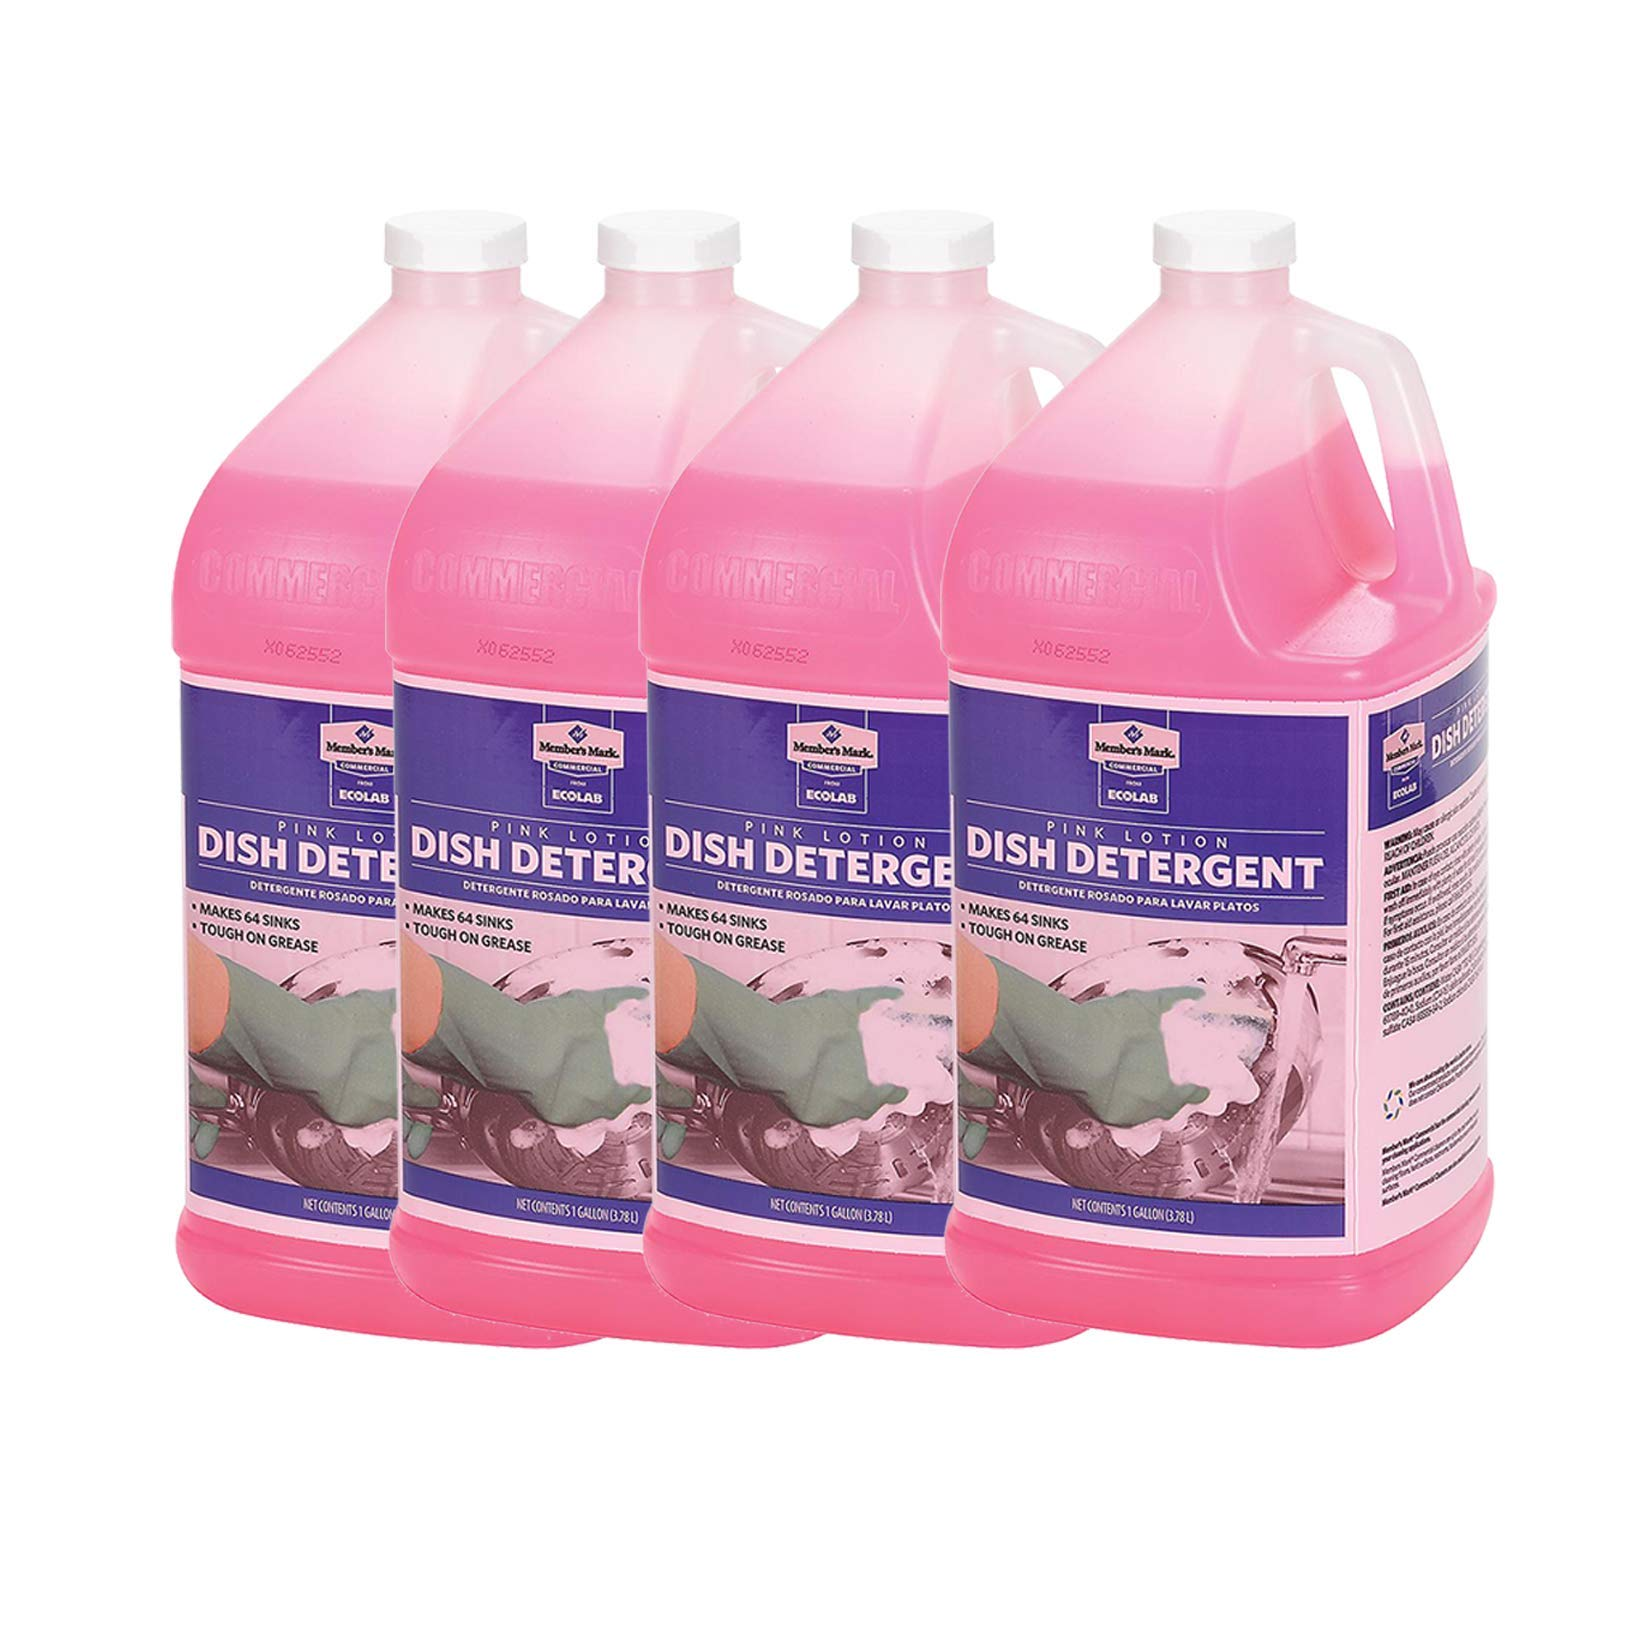 Member's Mark Commercial Pink Lotion Dish Detergent (1 gal.) Pack of 4 by Bulkidoki